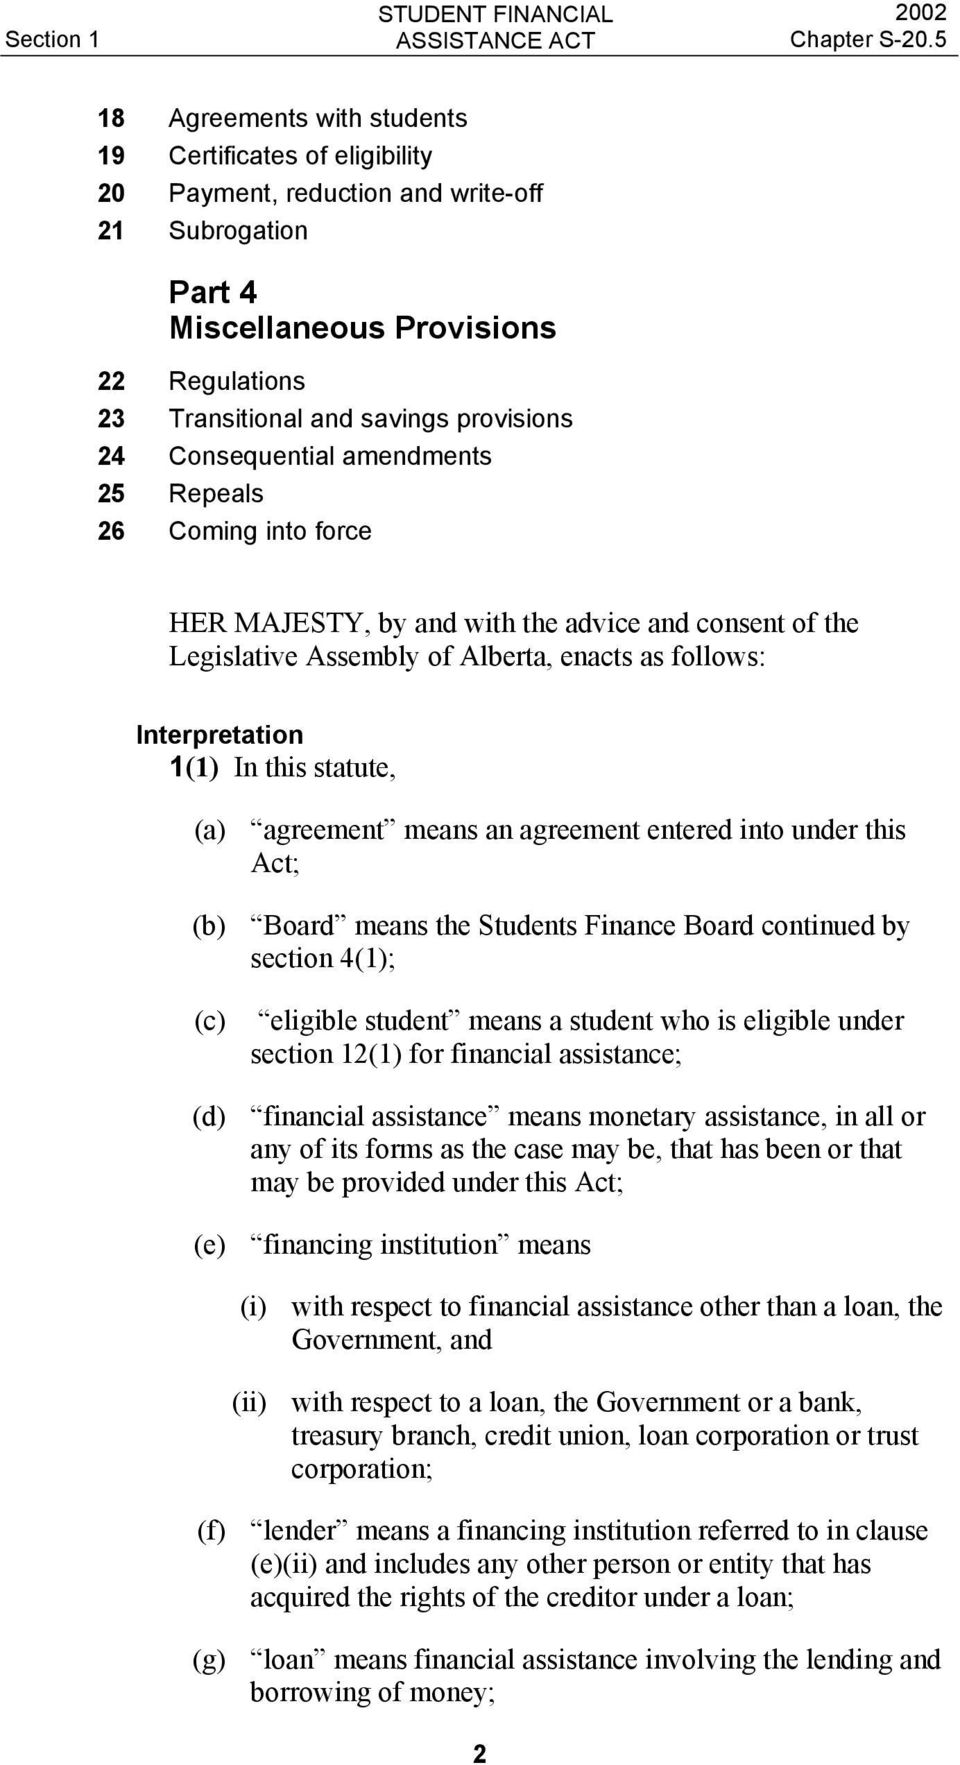 In this statute, (a) agreement means an agreement entered into under this Act; (b) Board means the Students Finance Board continued by section 4(1); (c) eligible student means a student who is